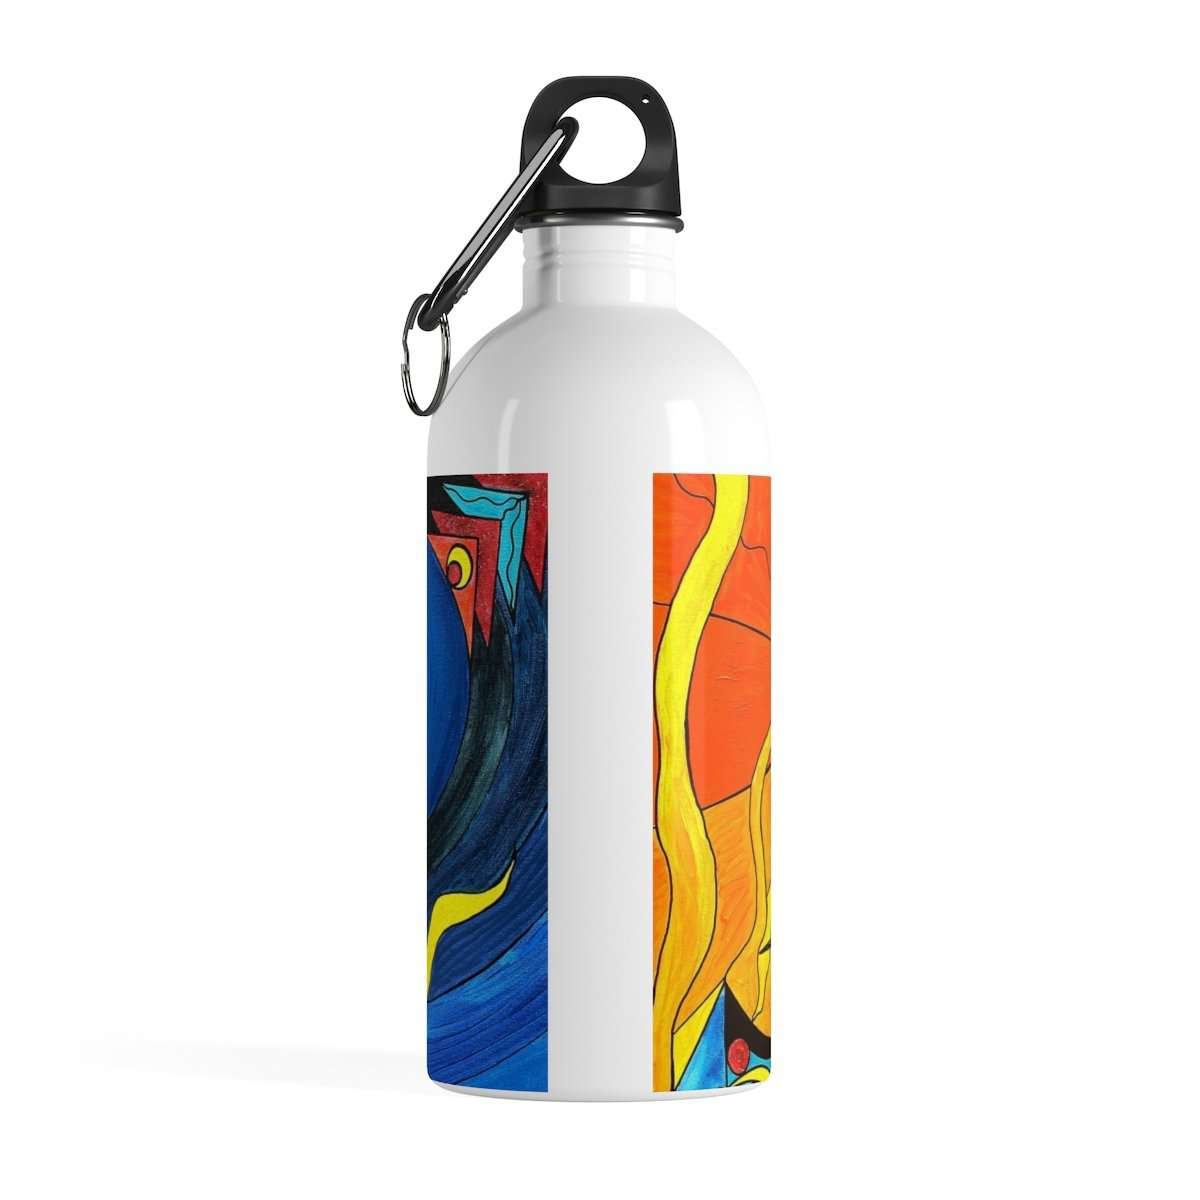 Exploration - Stainless Steel Water Bottle